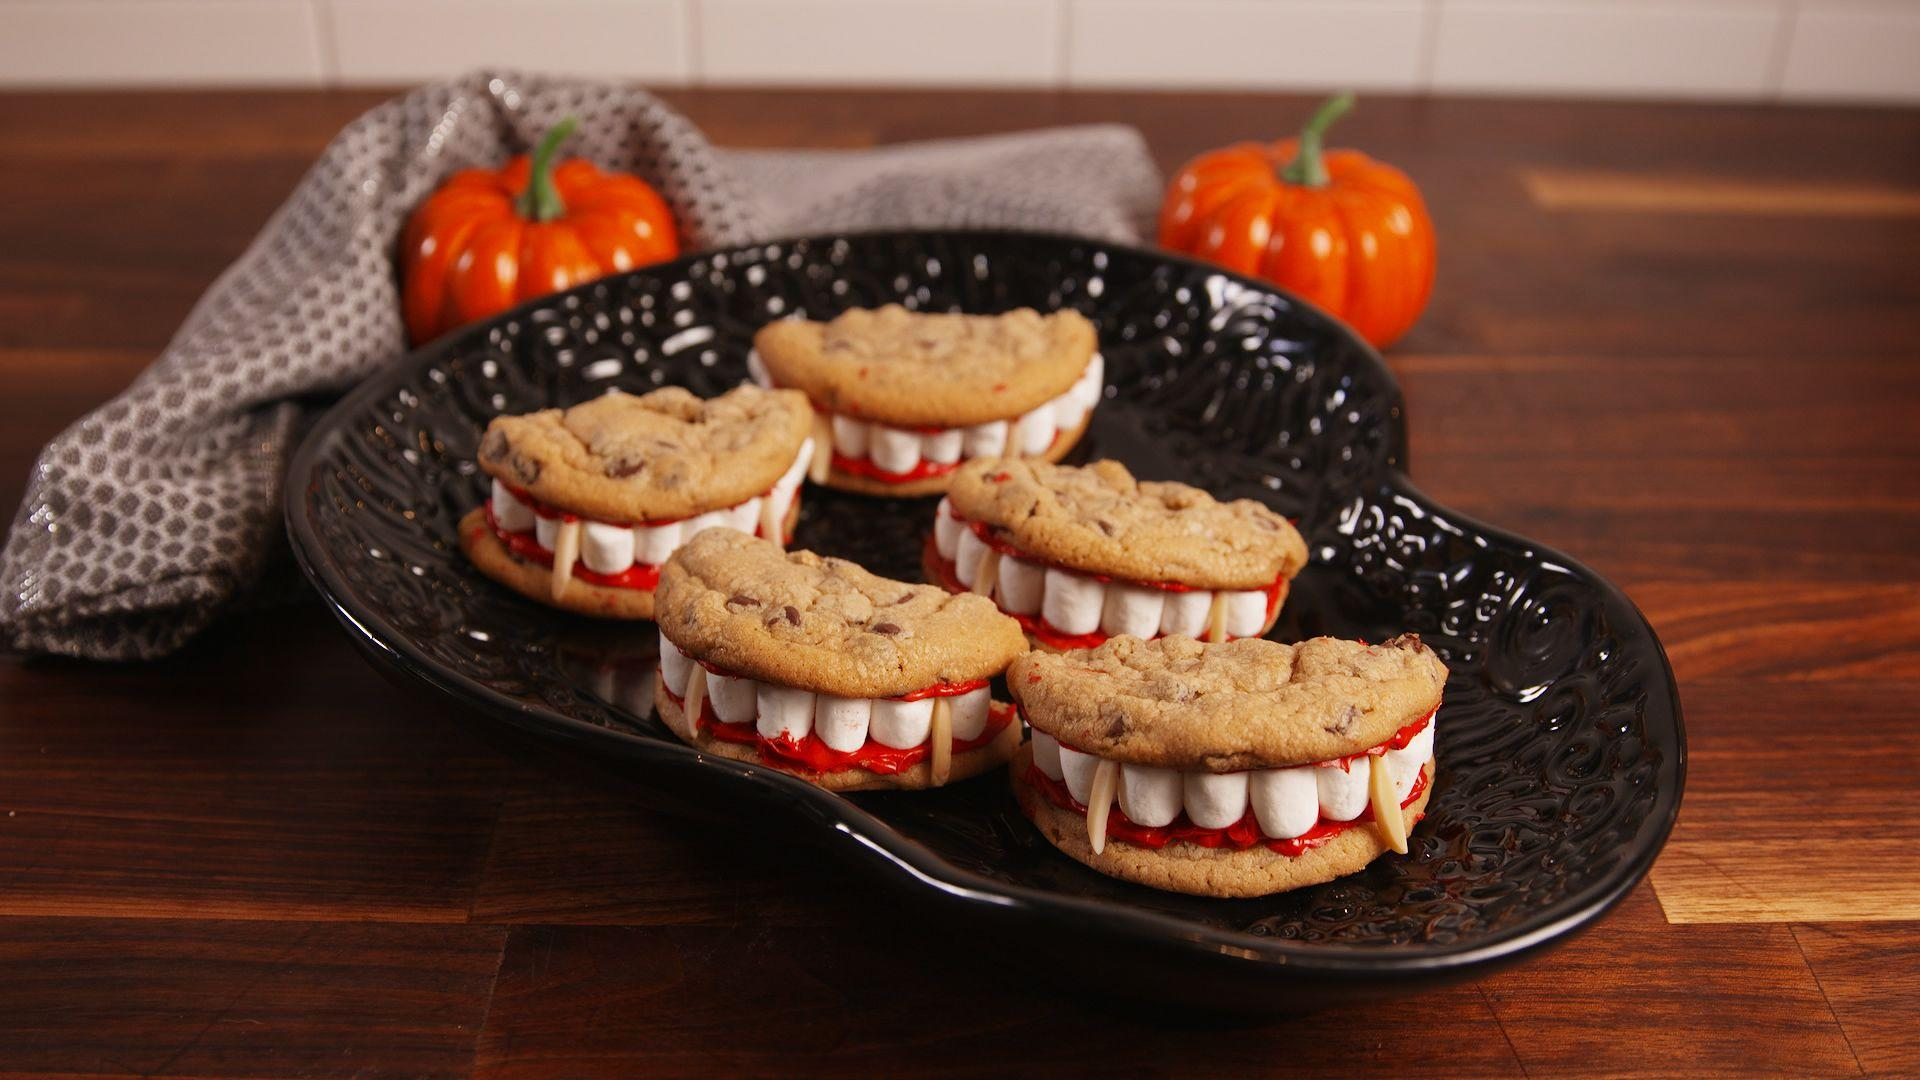 """<p>We like to think of Halloween as a month-long occasion. If there can be 25 days of Christmas, why not, right? Make your October more festive with these fun, Hallow's Eve-themed snacks. And while you're in the spirit, here are some fun <a href=""""https://www.delish.com/holiday-recipes/halloween/g1813/halloween-pumpkin-carving/"""" rel=""""nofollow noopener"""" target=""""_blank"""" data-ylk=""""slk:Jack-O-Lantern ideas"""" class=""""link rapid-noclick-resp"""">Jack-O-Lantern ideas</a> to get your creative juices flowing.</p>"""